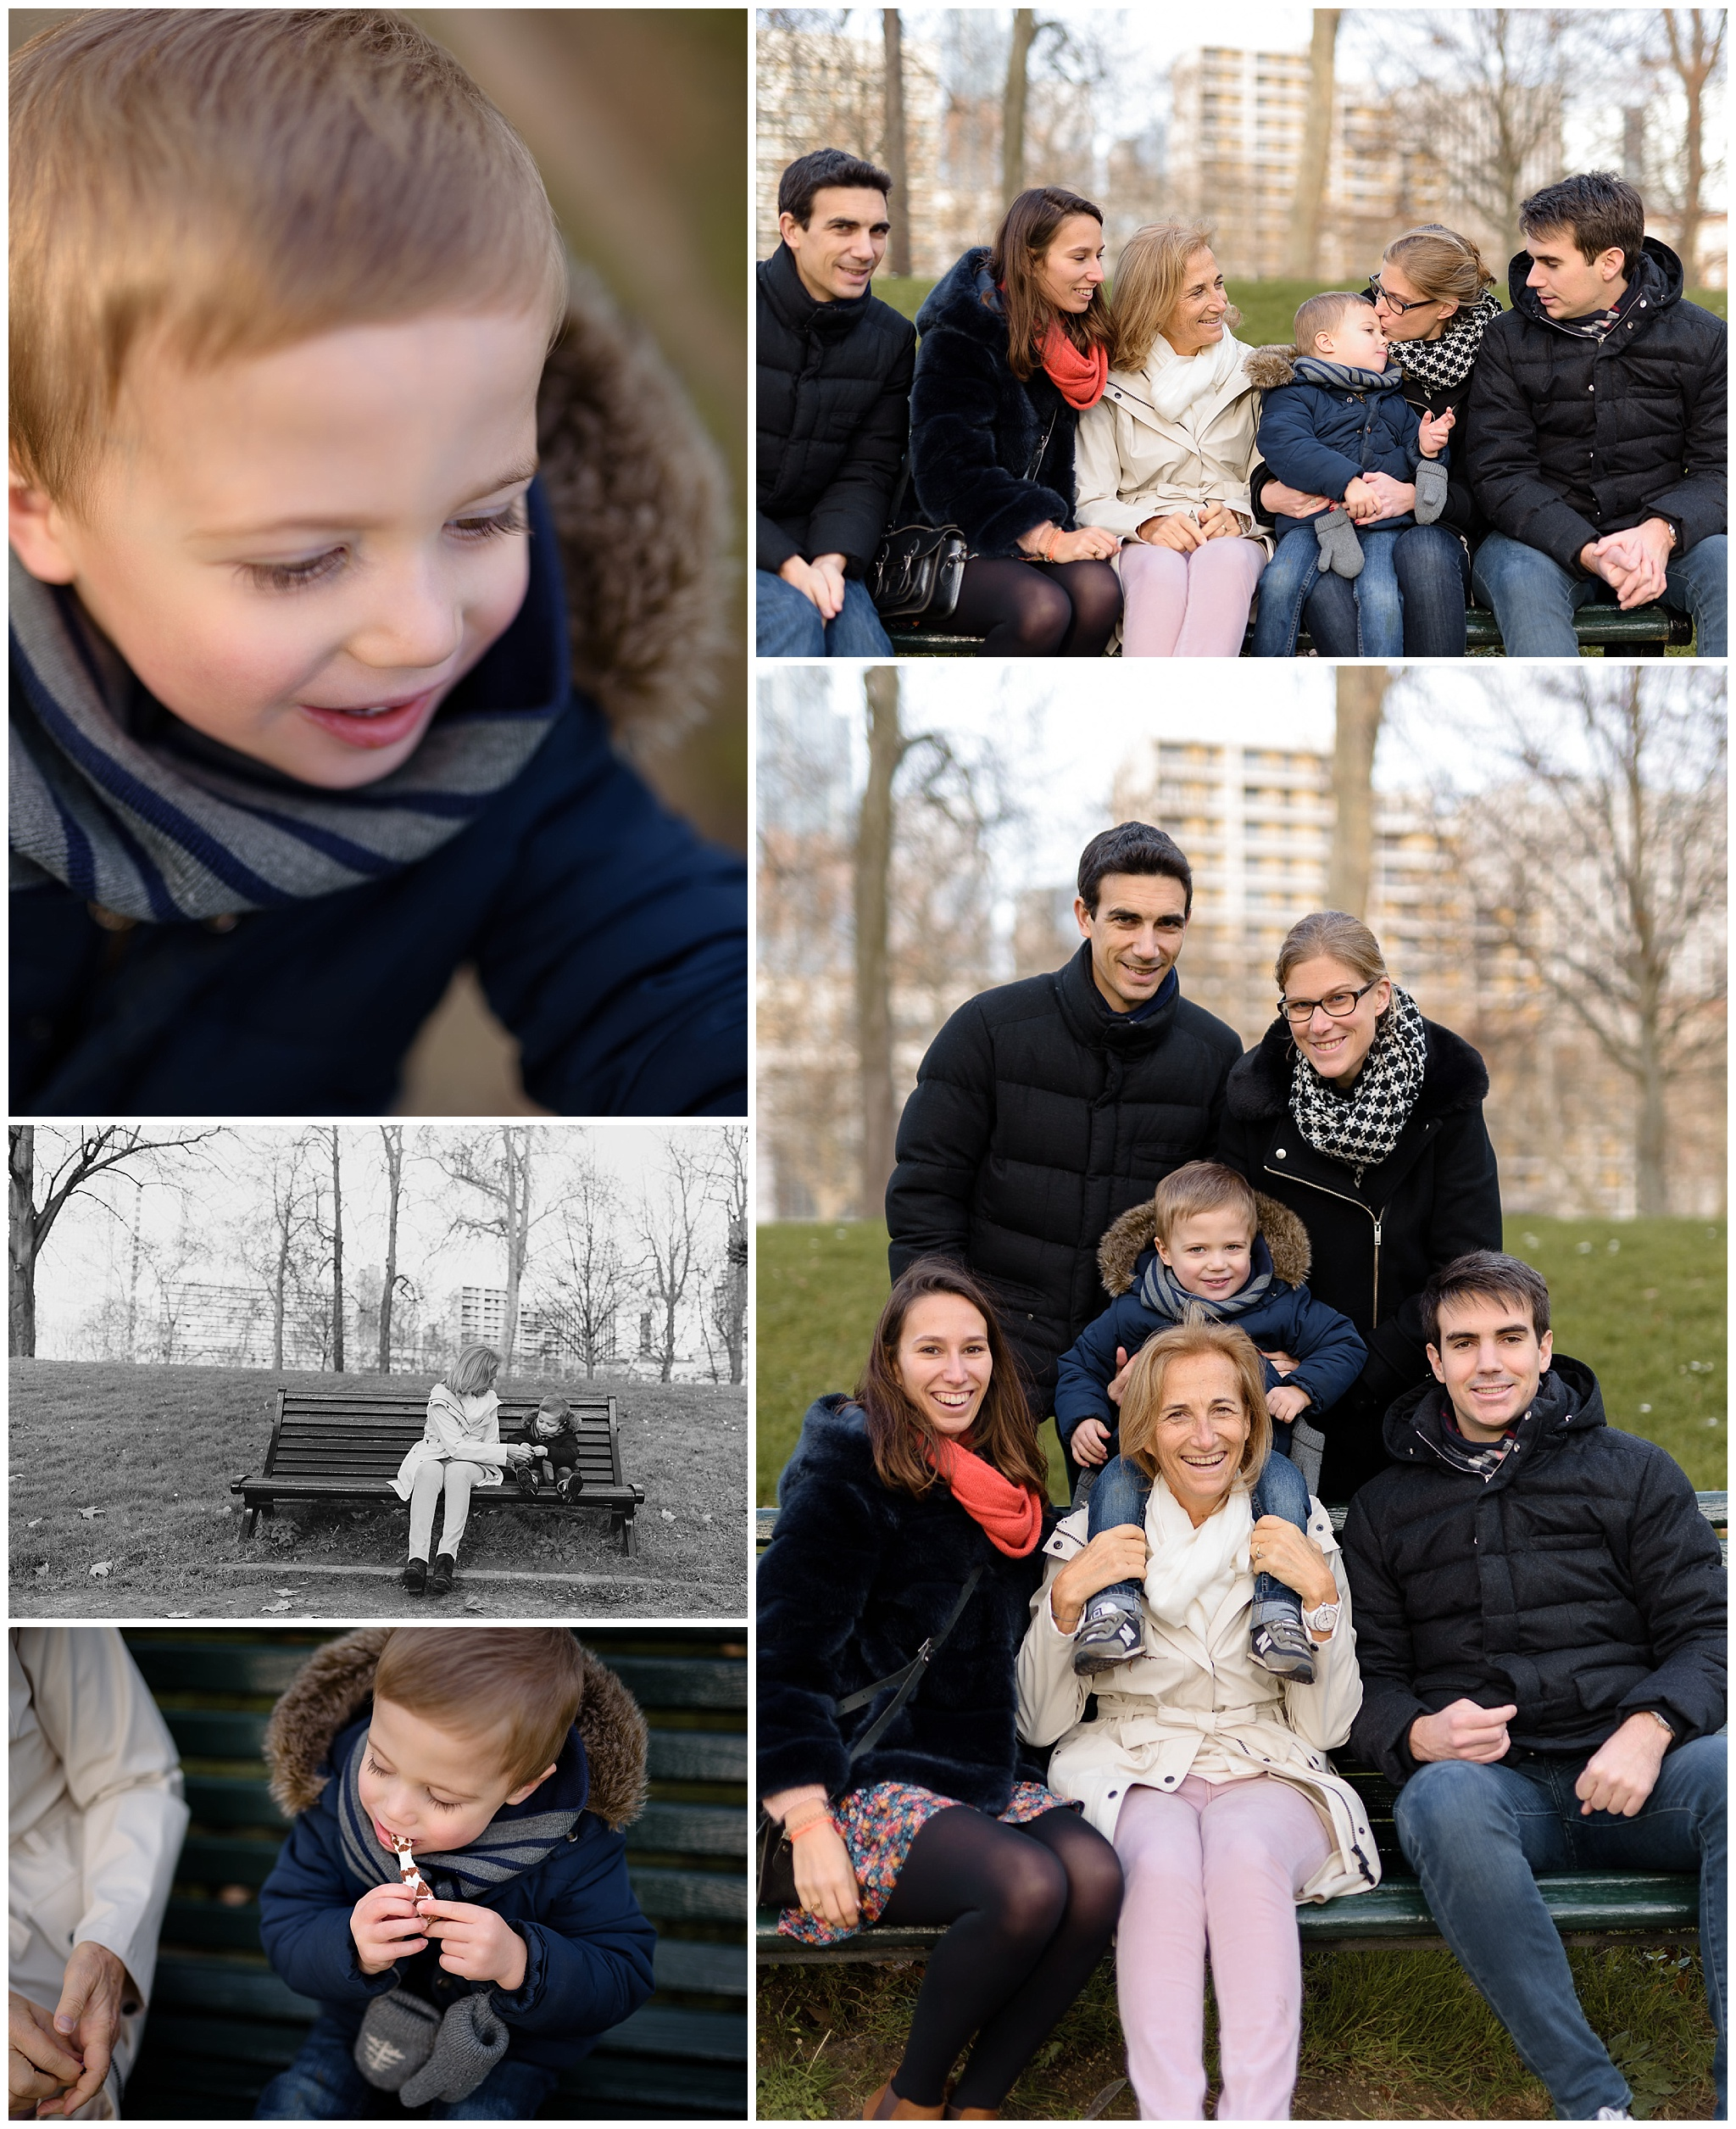 séance photo famille grand-parent enfant Paris Ile-de-France Yvelines puteaux Hauts-de-Seine lifestyle 92 78 75